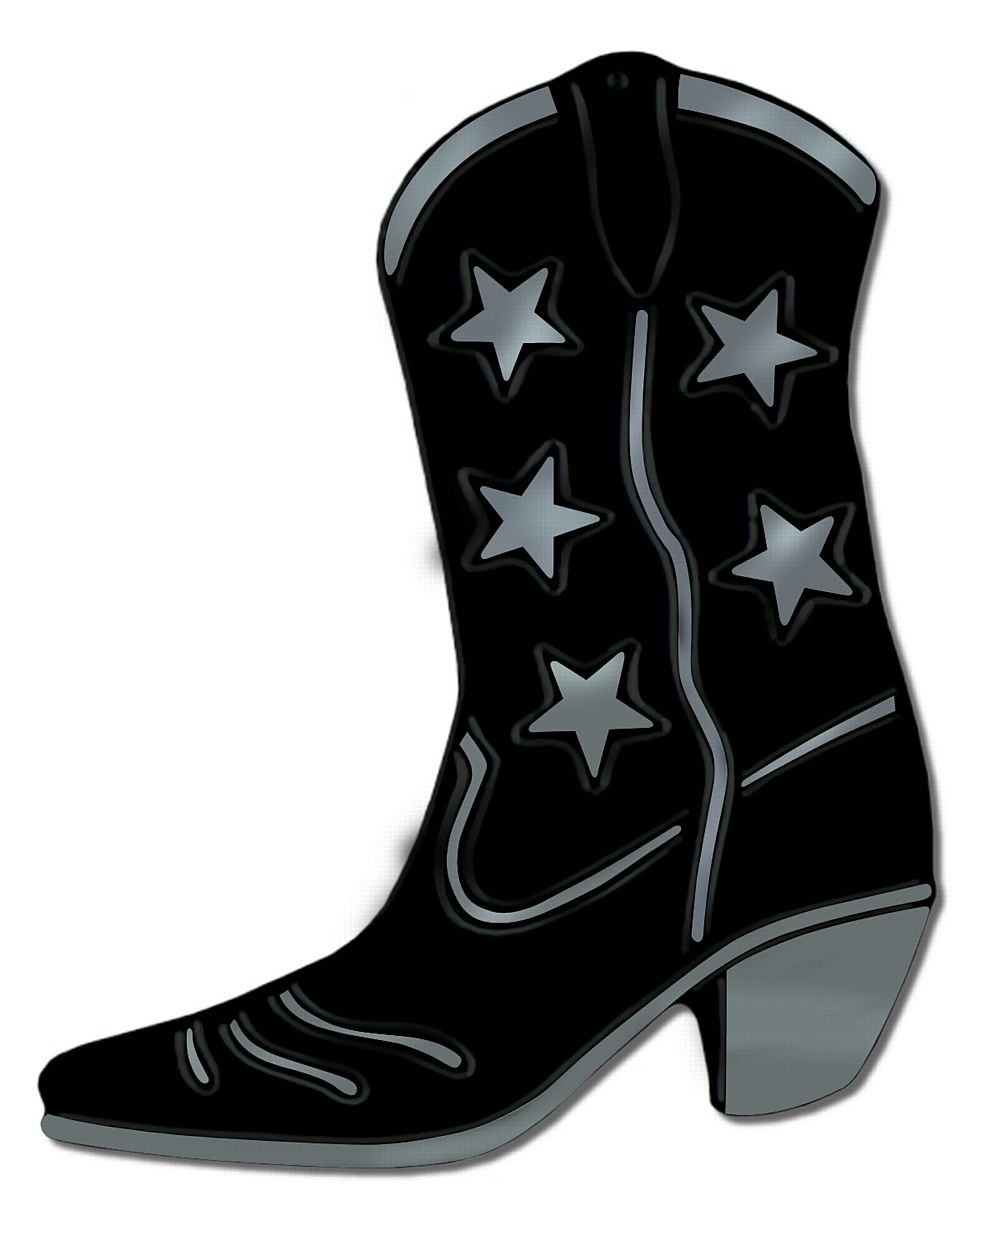 Cartoon cowboy boots clip art indian costumes cowboy and cowgirl.